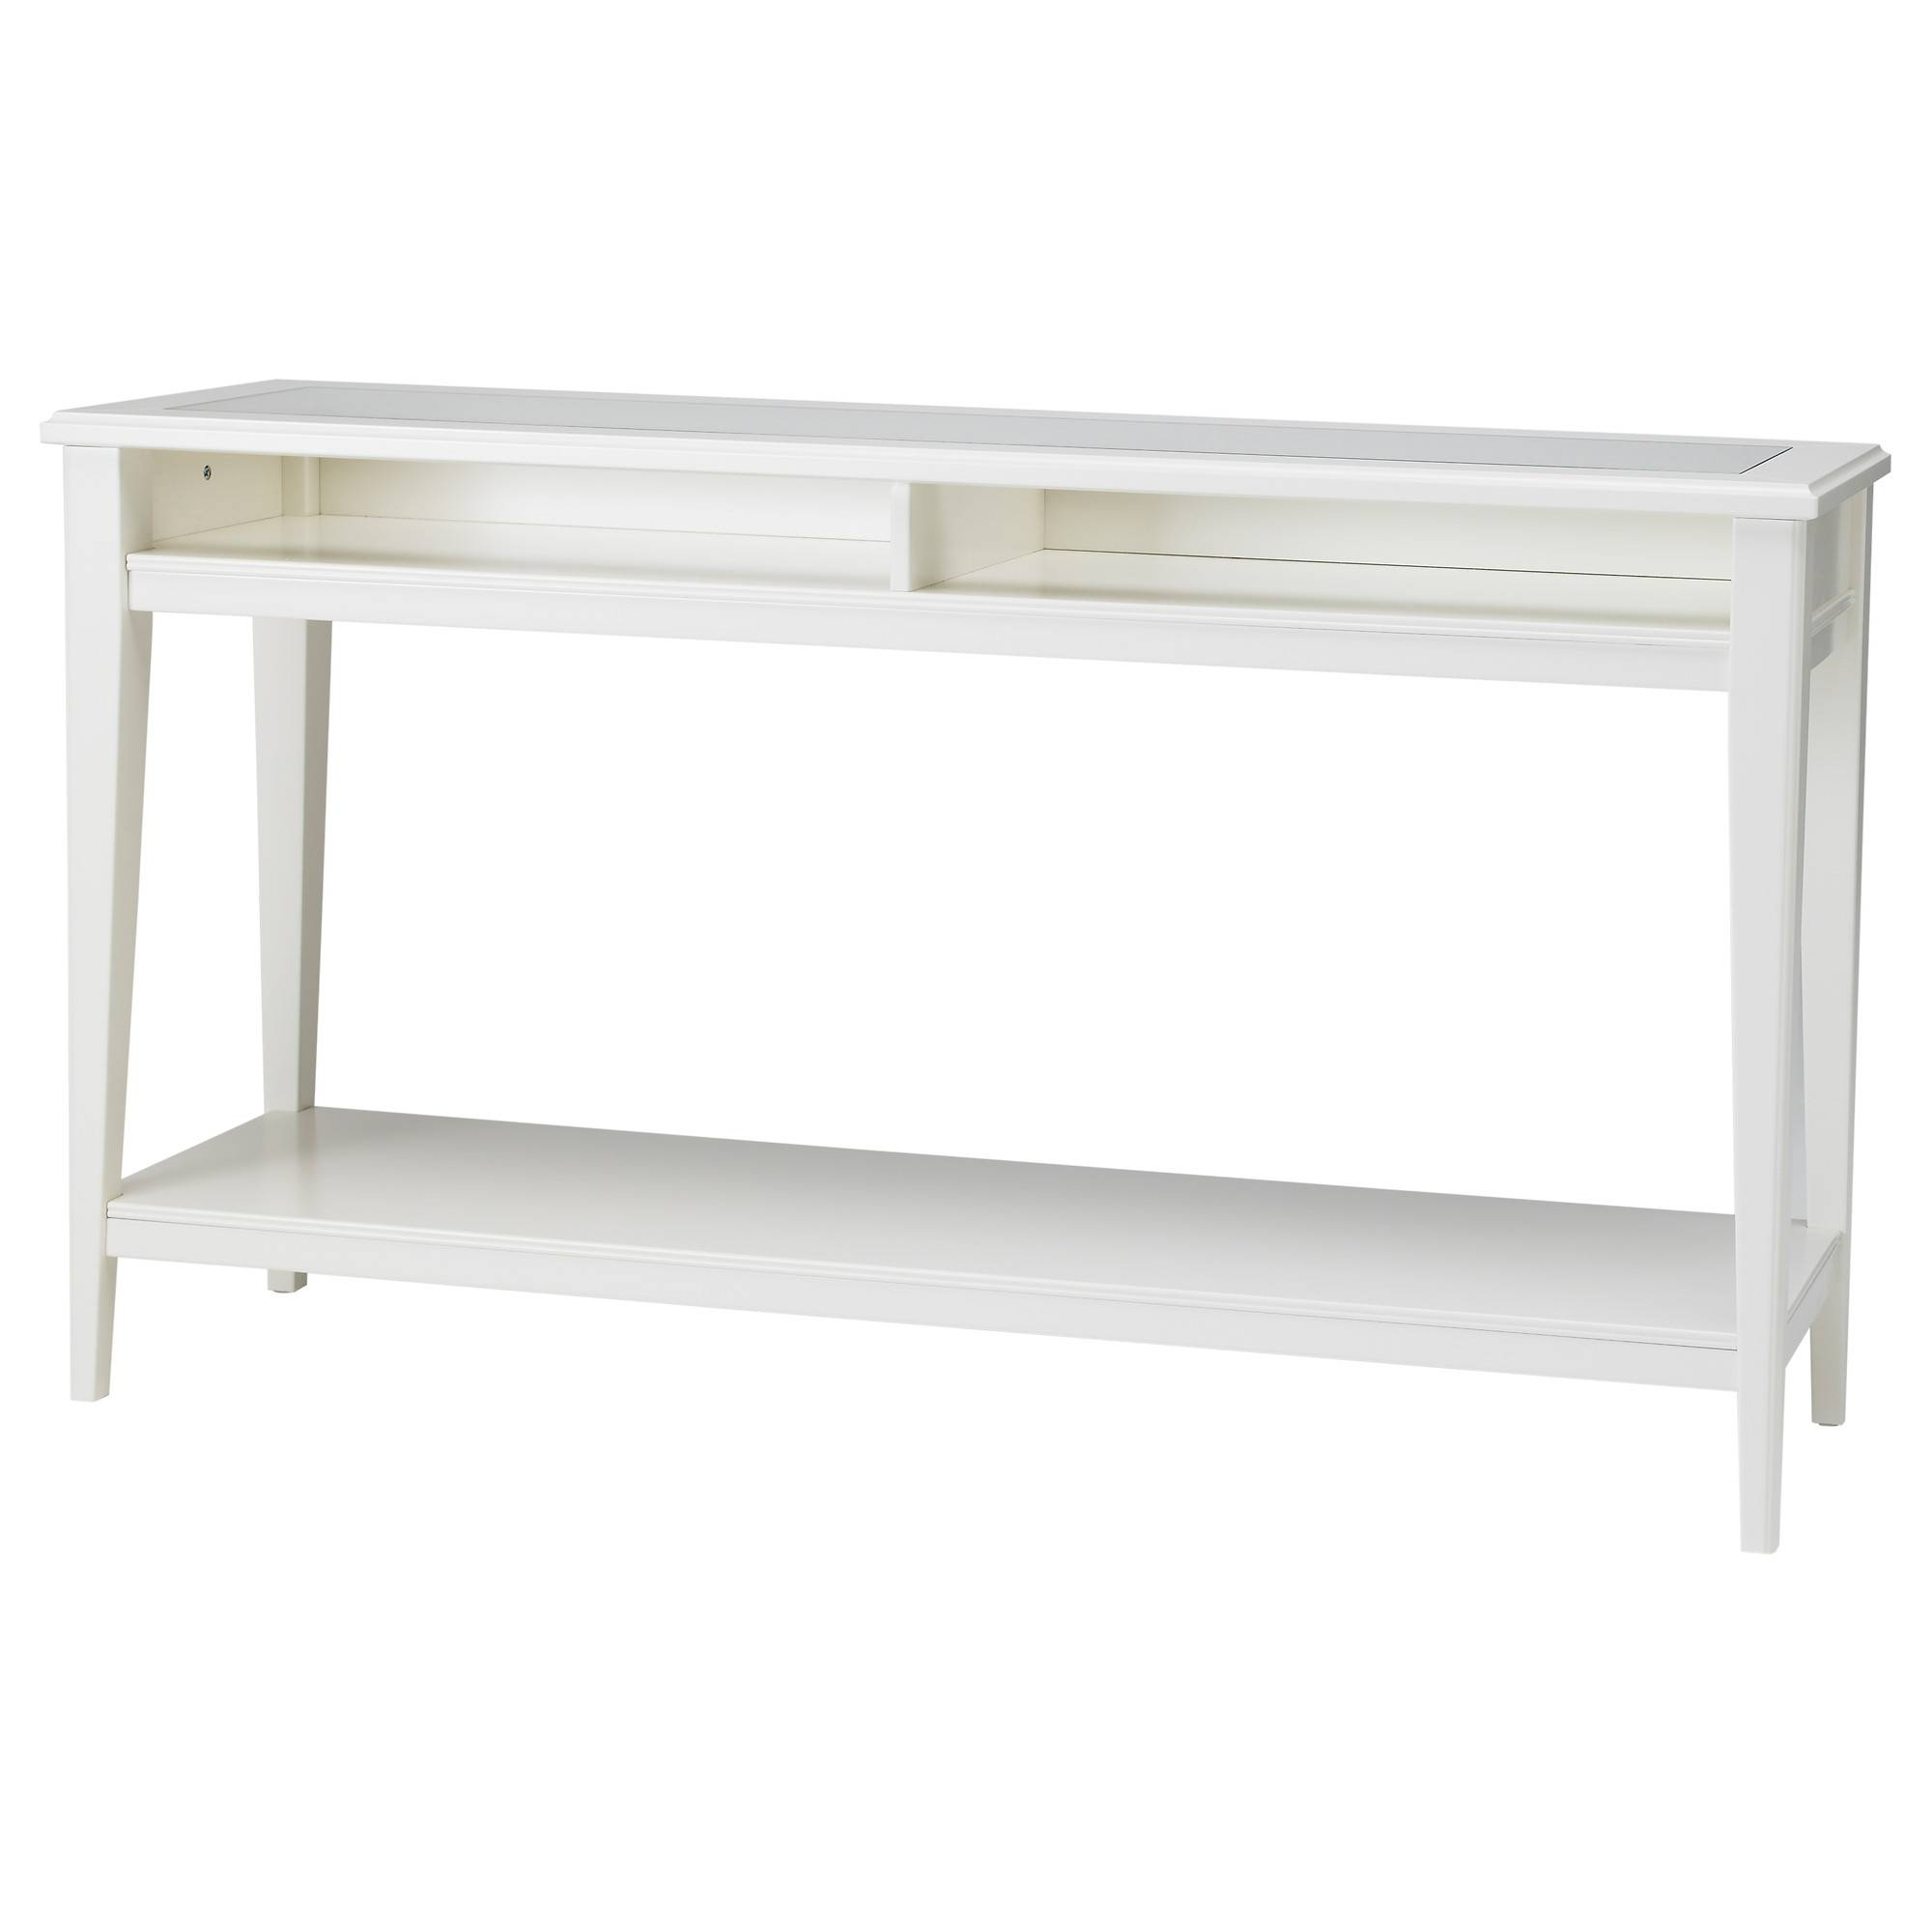 liatorp sofa table instructions recliner set 3 2 1 india 15 best collection of white glass sideboards